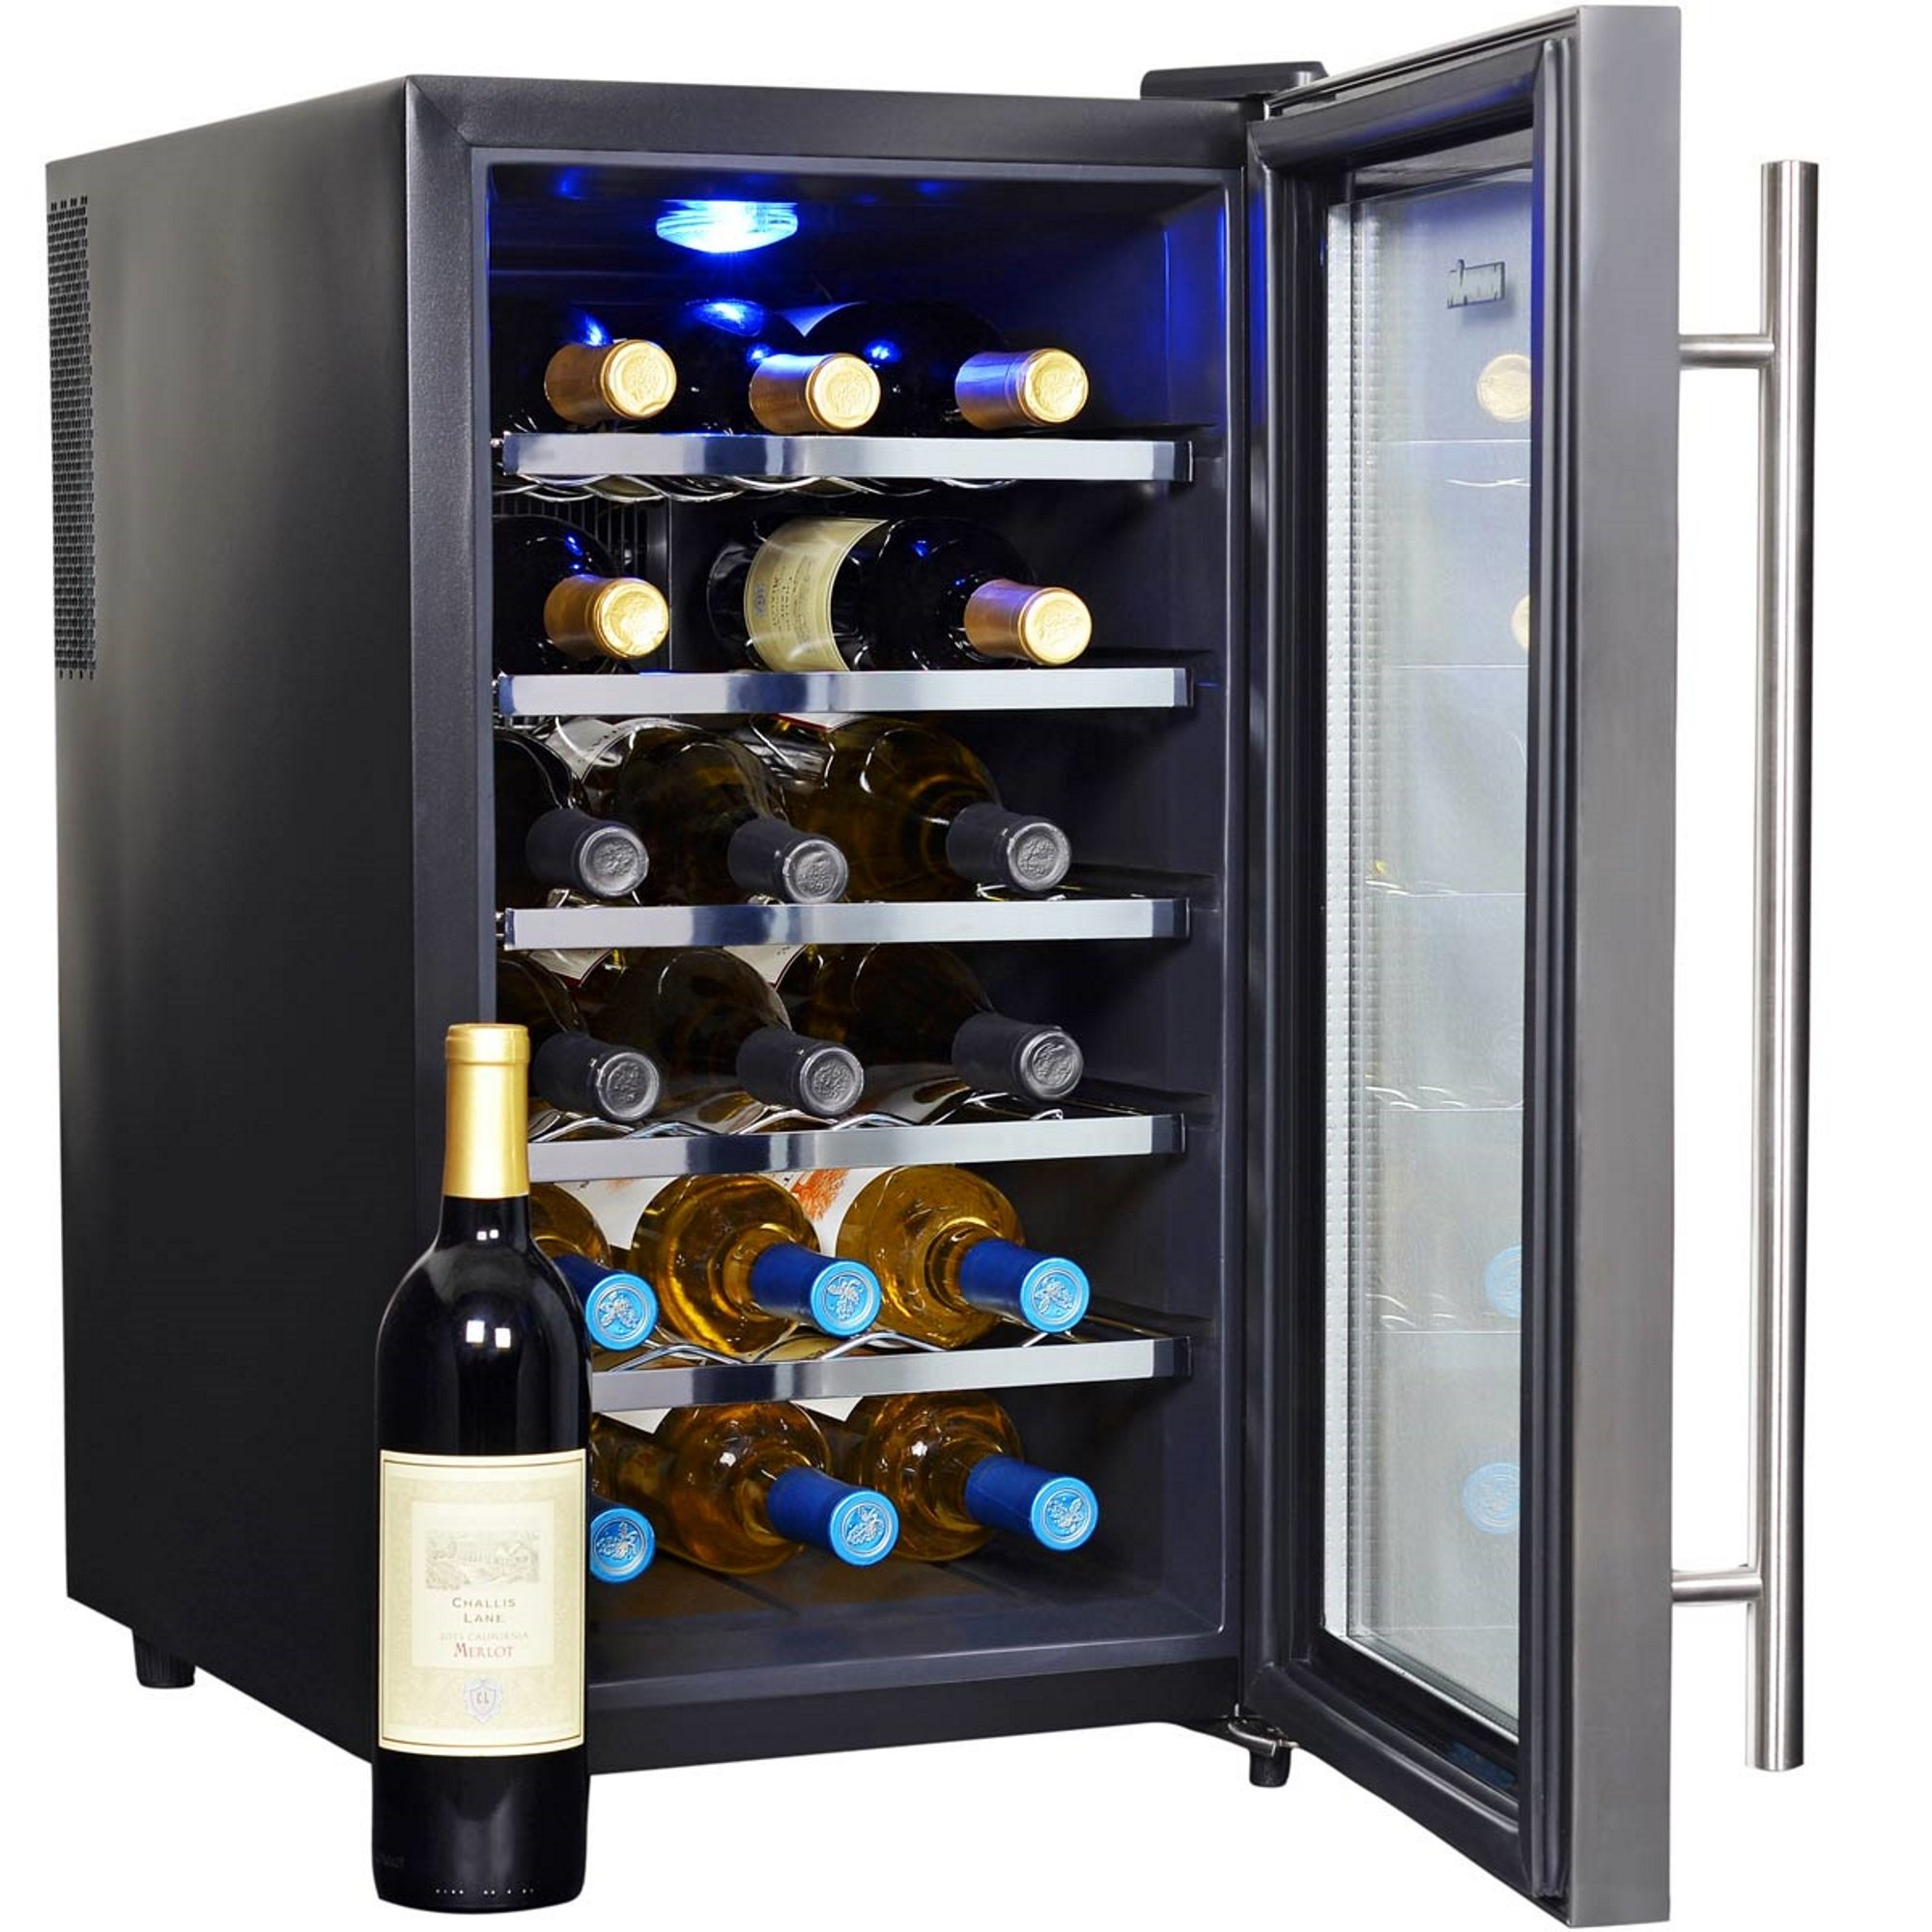 NewAir AW-181E 18 Bottle Thermoelectric Wine Cooler, Black by NewAir (Image #8)